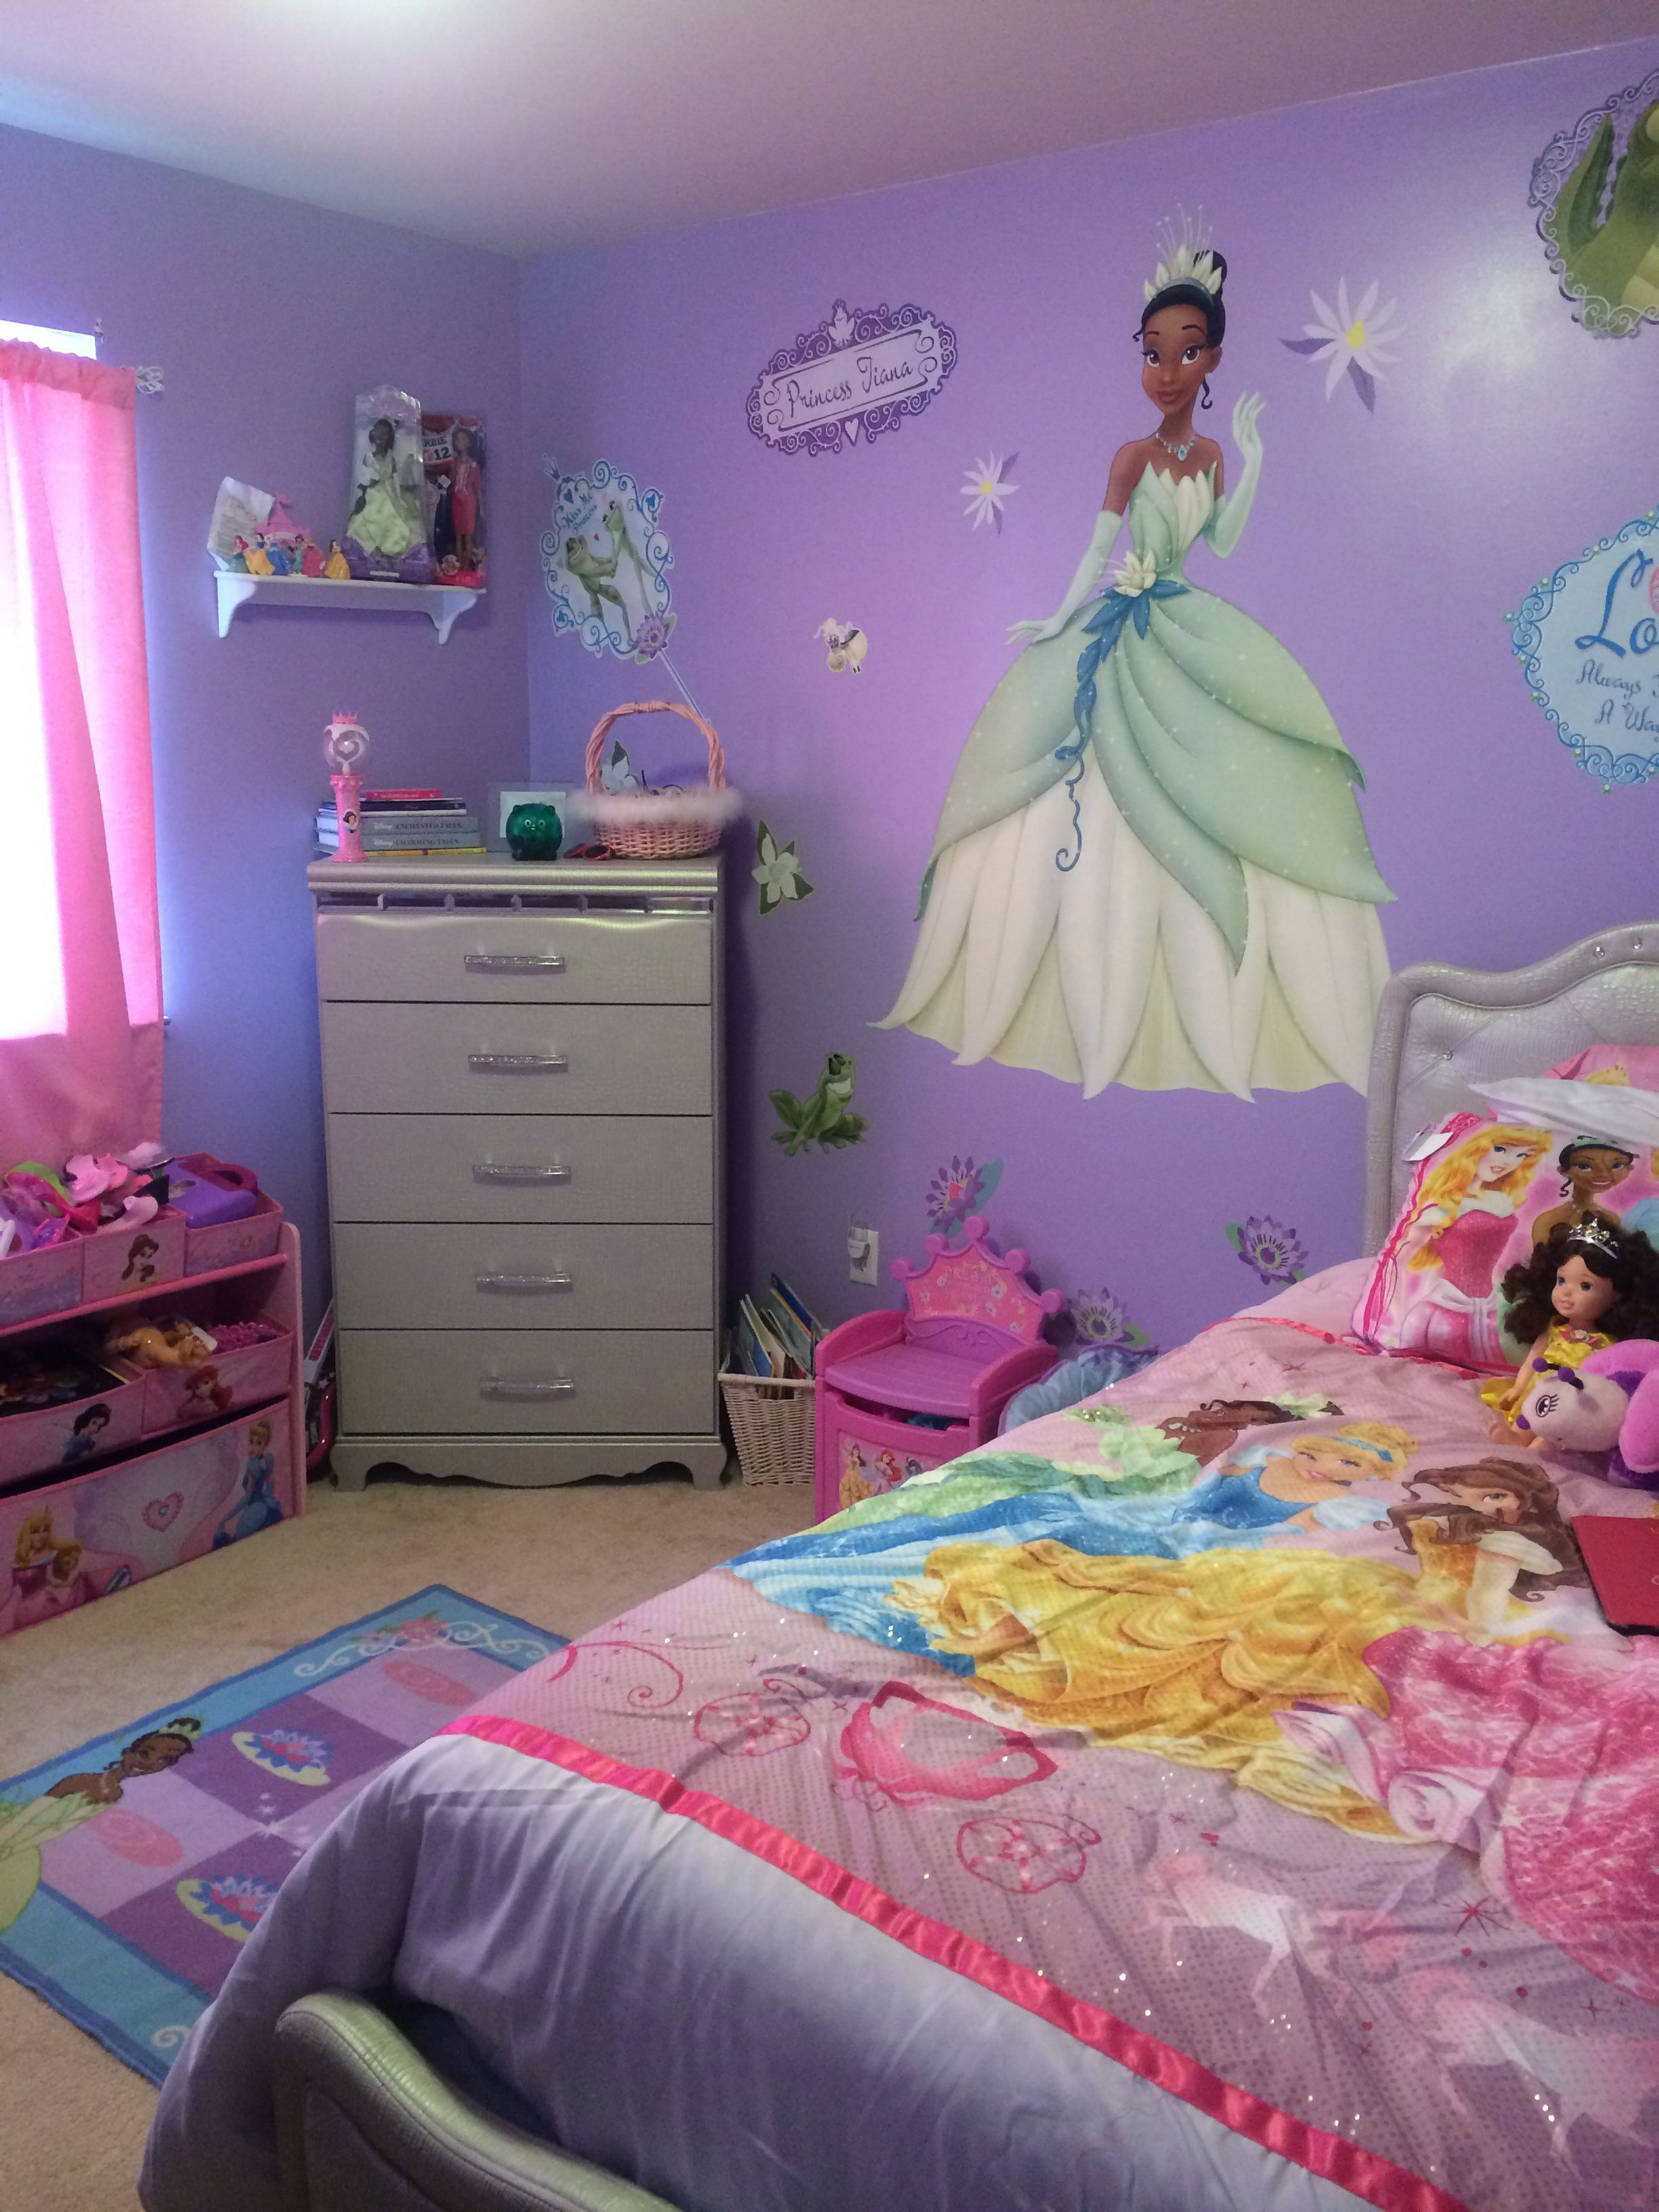 30 Beautiful Princess Bedroom Design And Decor Ideas For Your Lovely Girl images